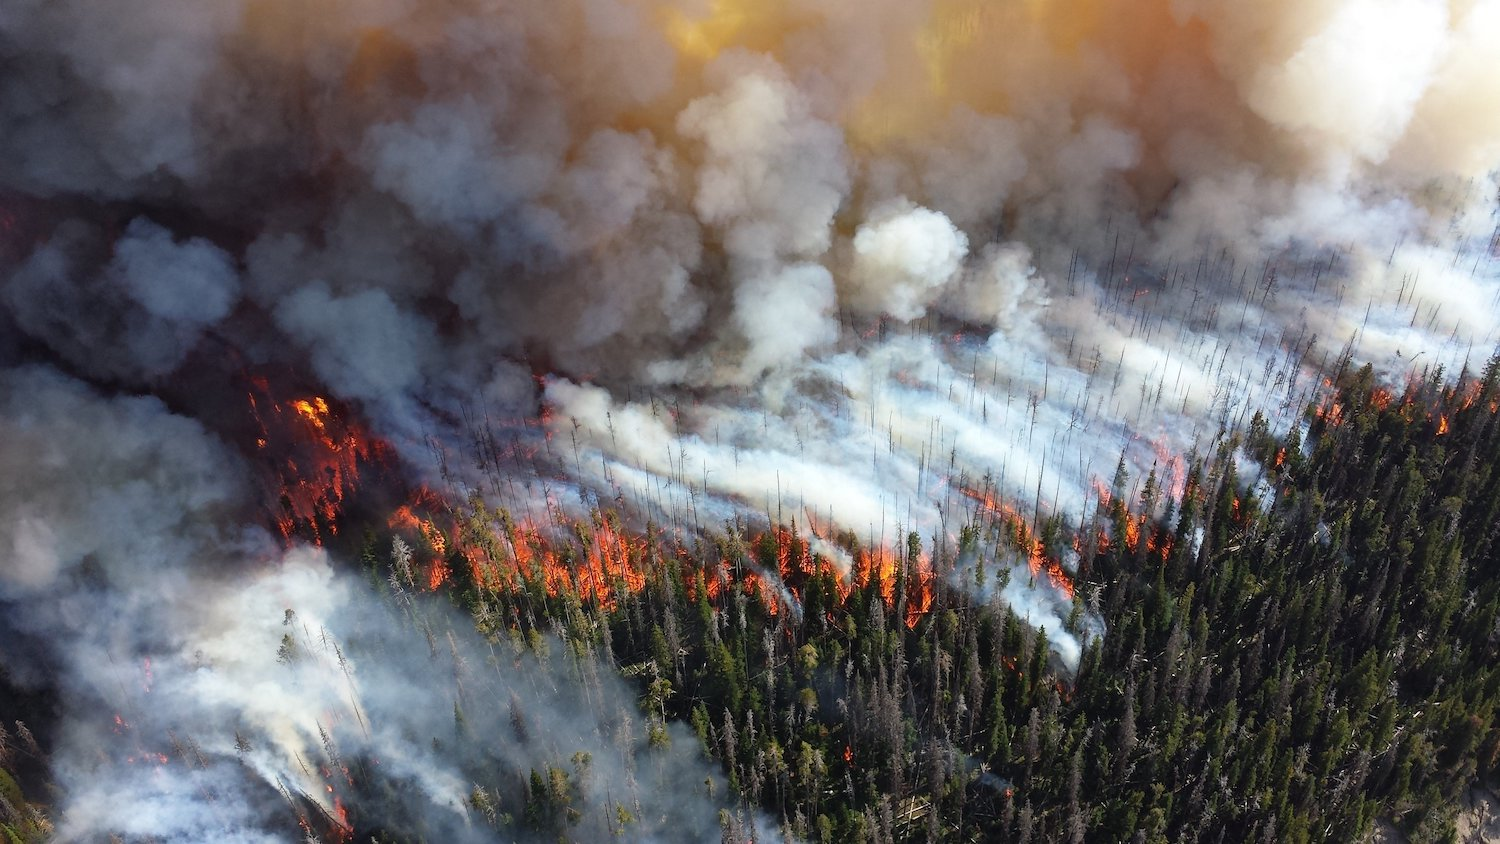 A wildfire burns a forest in the western United States.